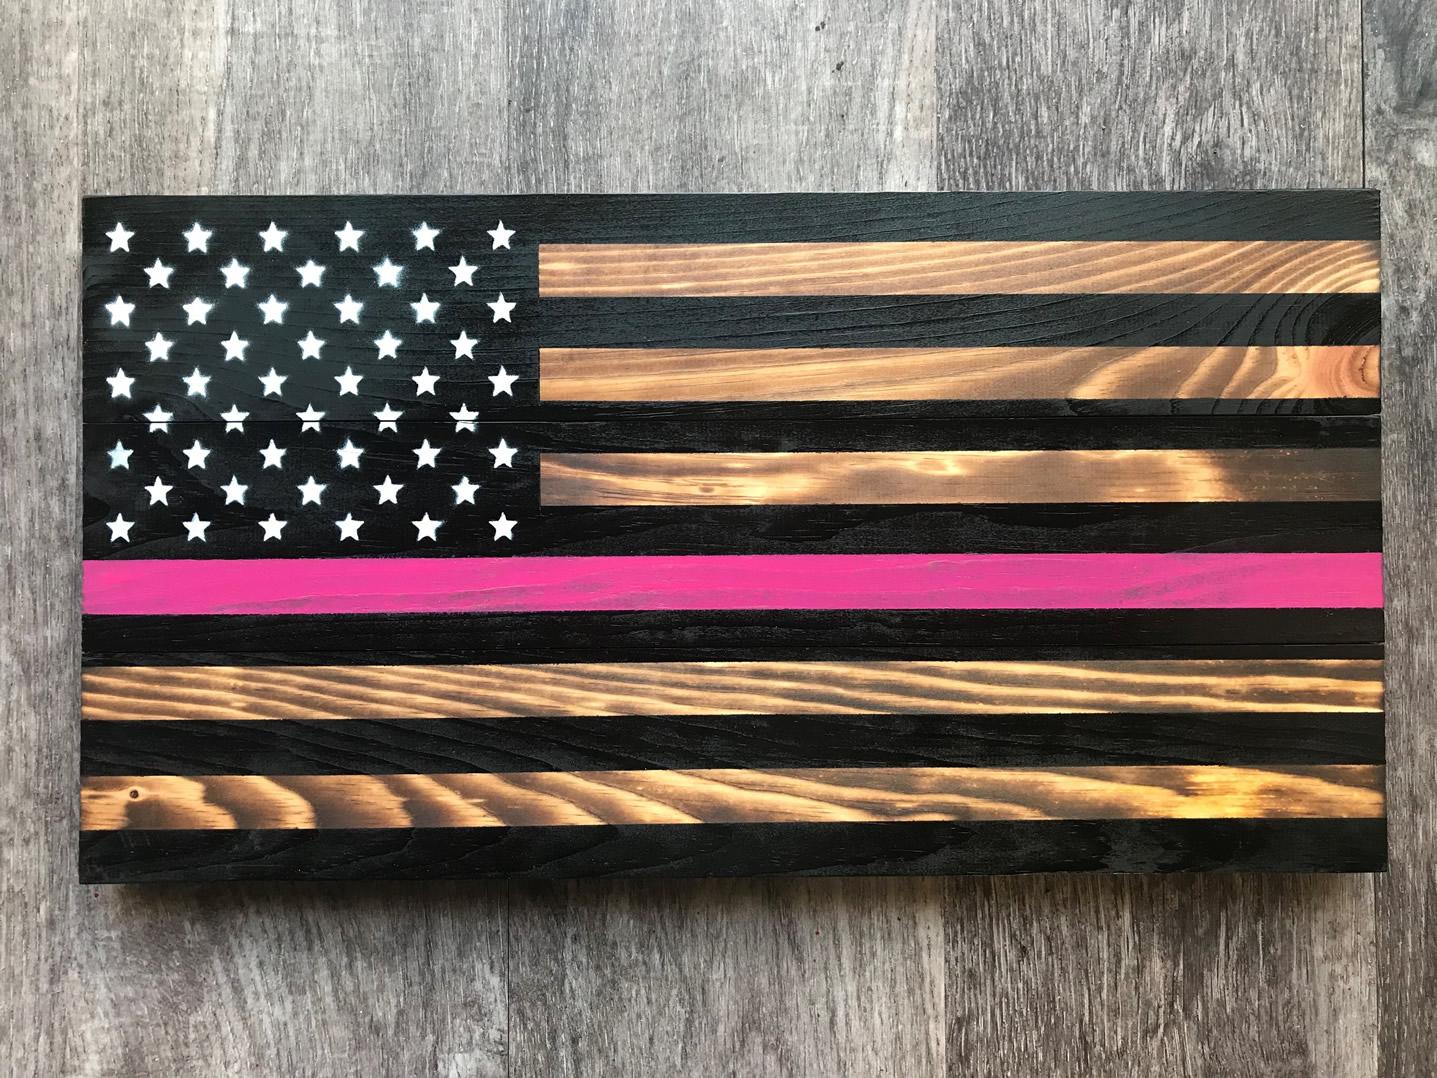 Breast Cancer awareness wooden American flag wall art